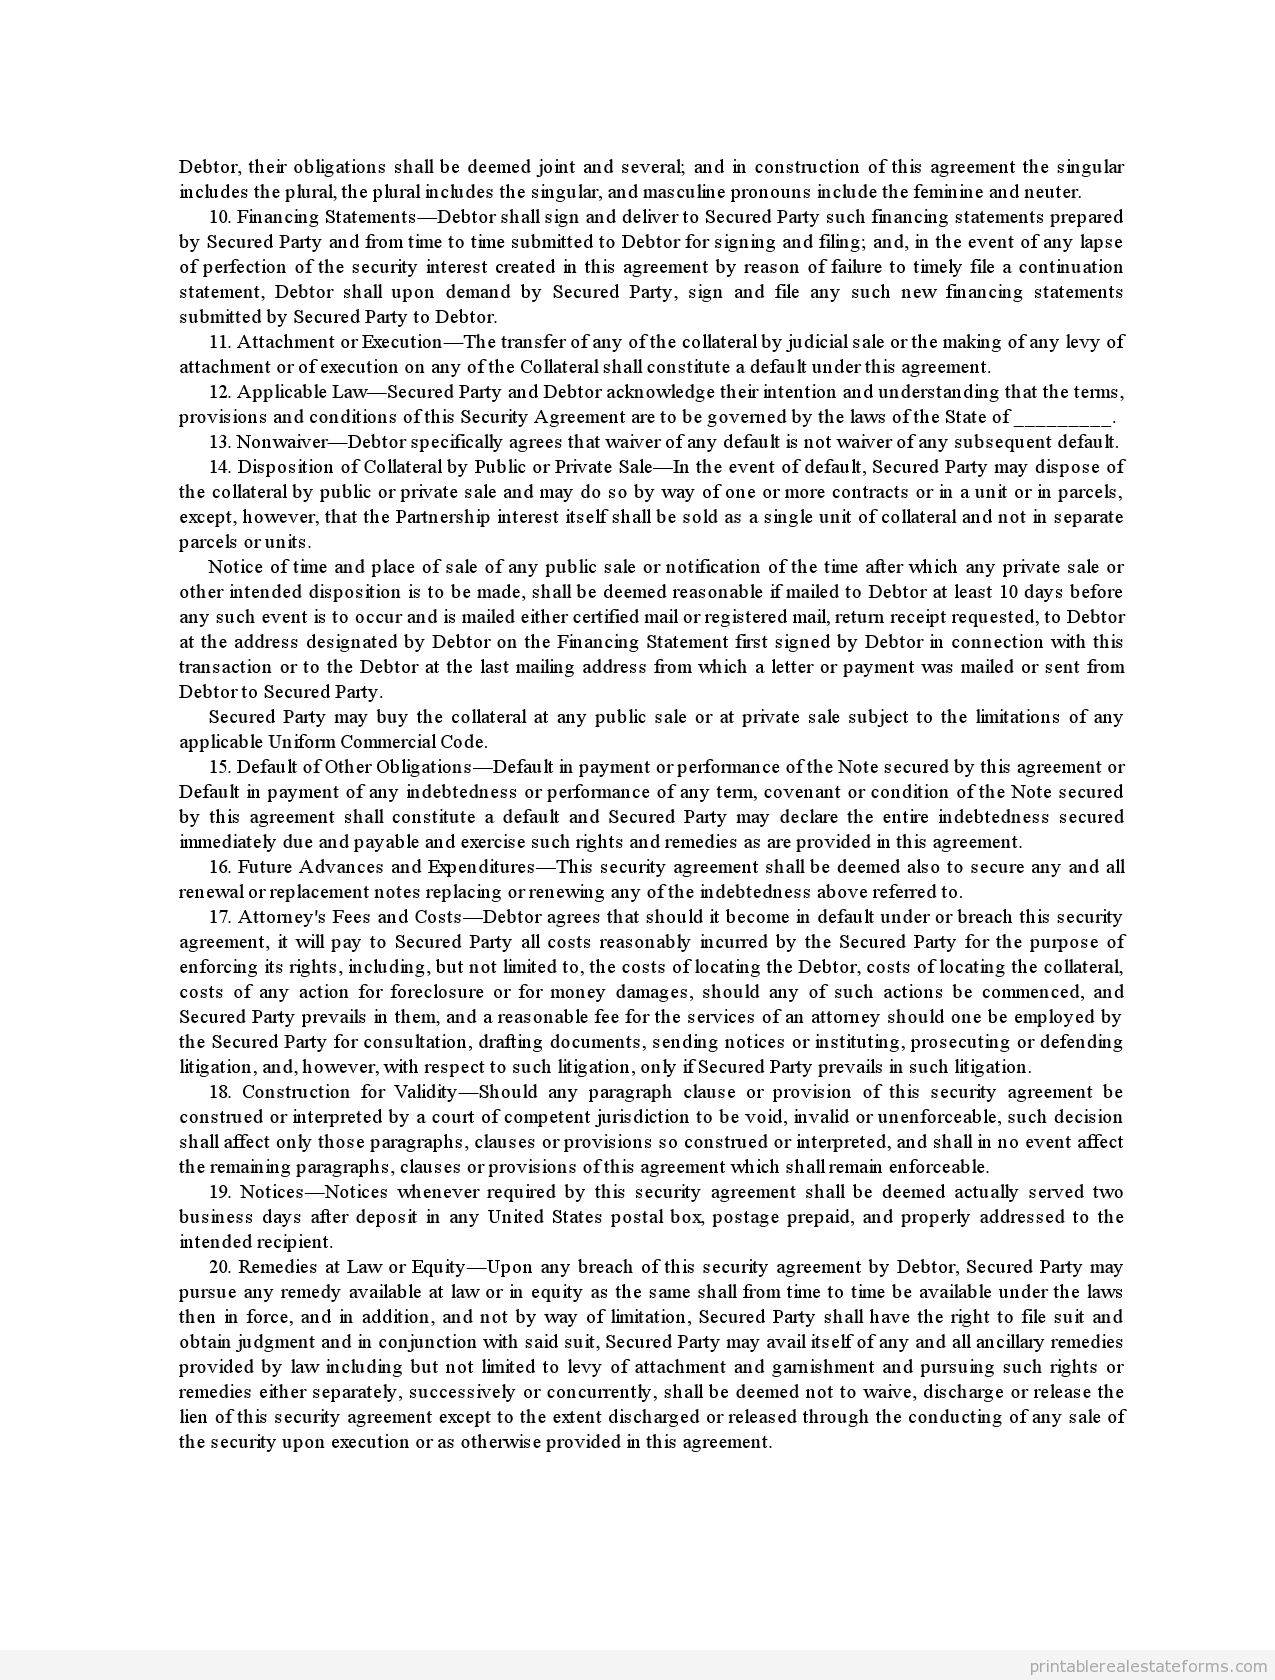 Printable security agreement template 2015 – Sample Security Agreement